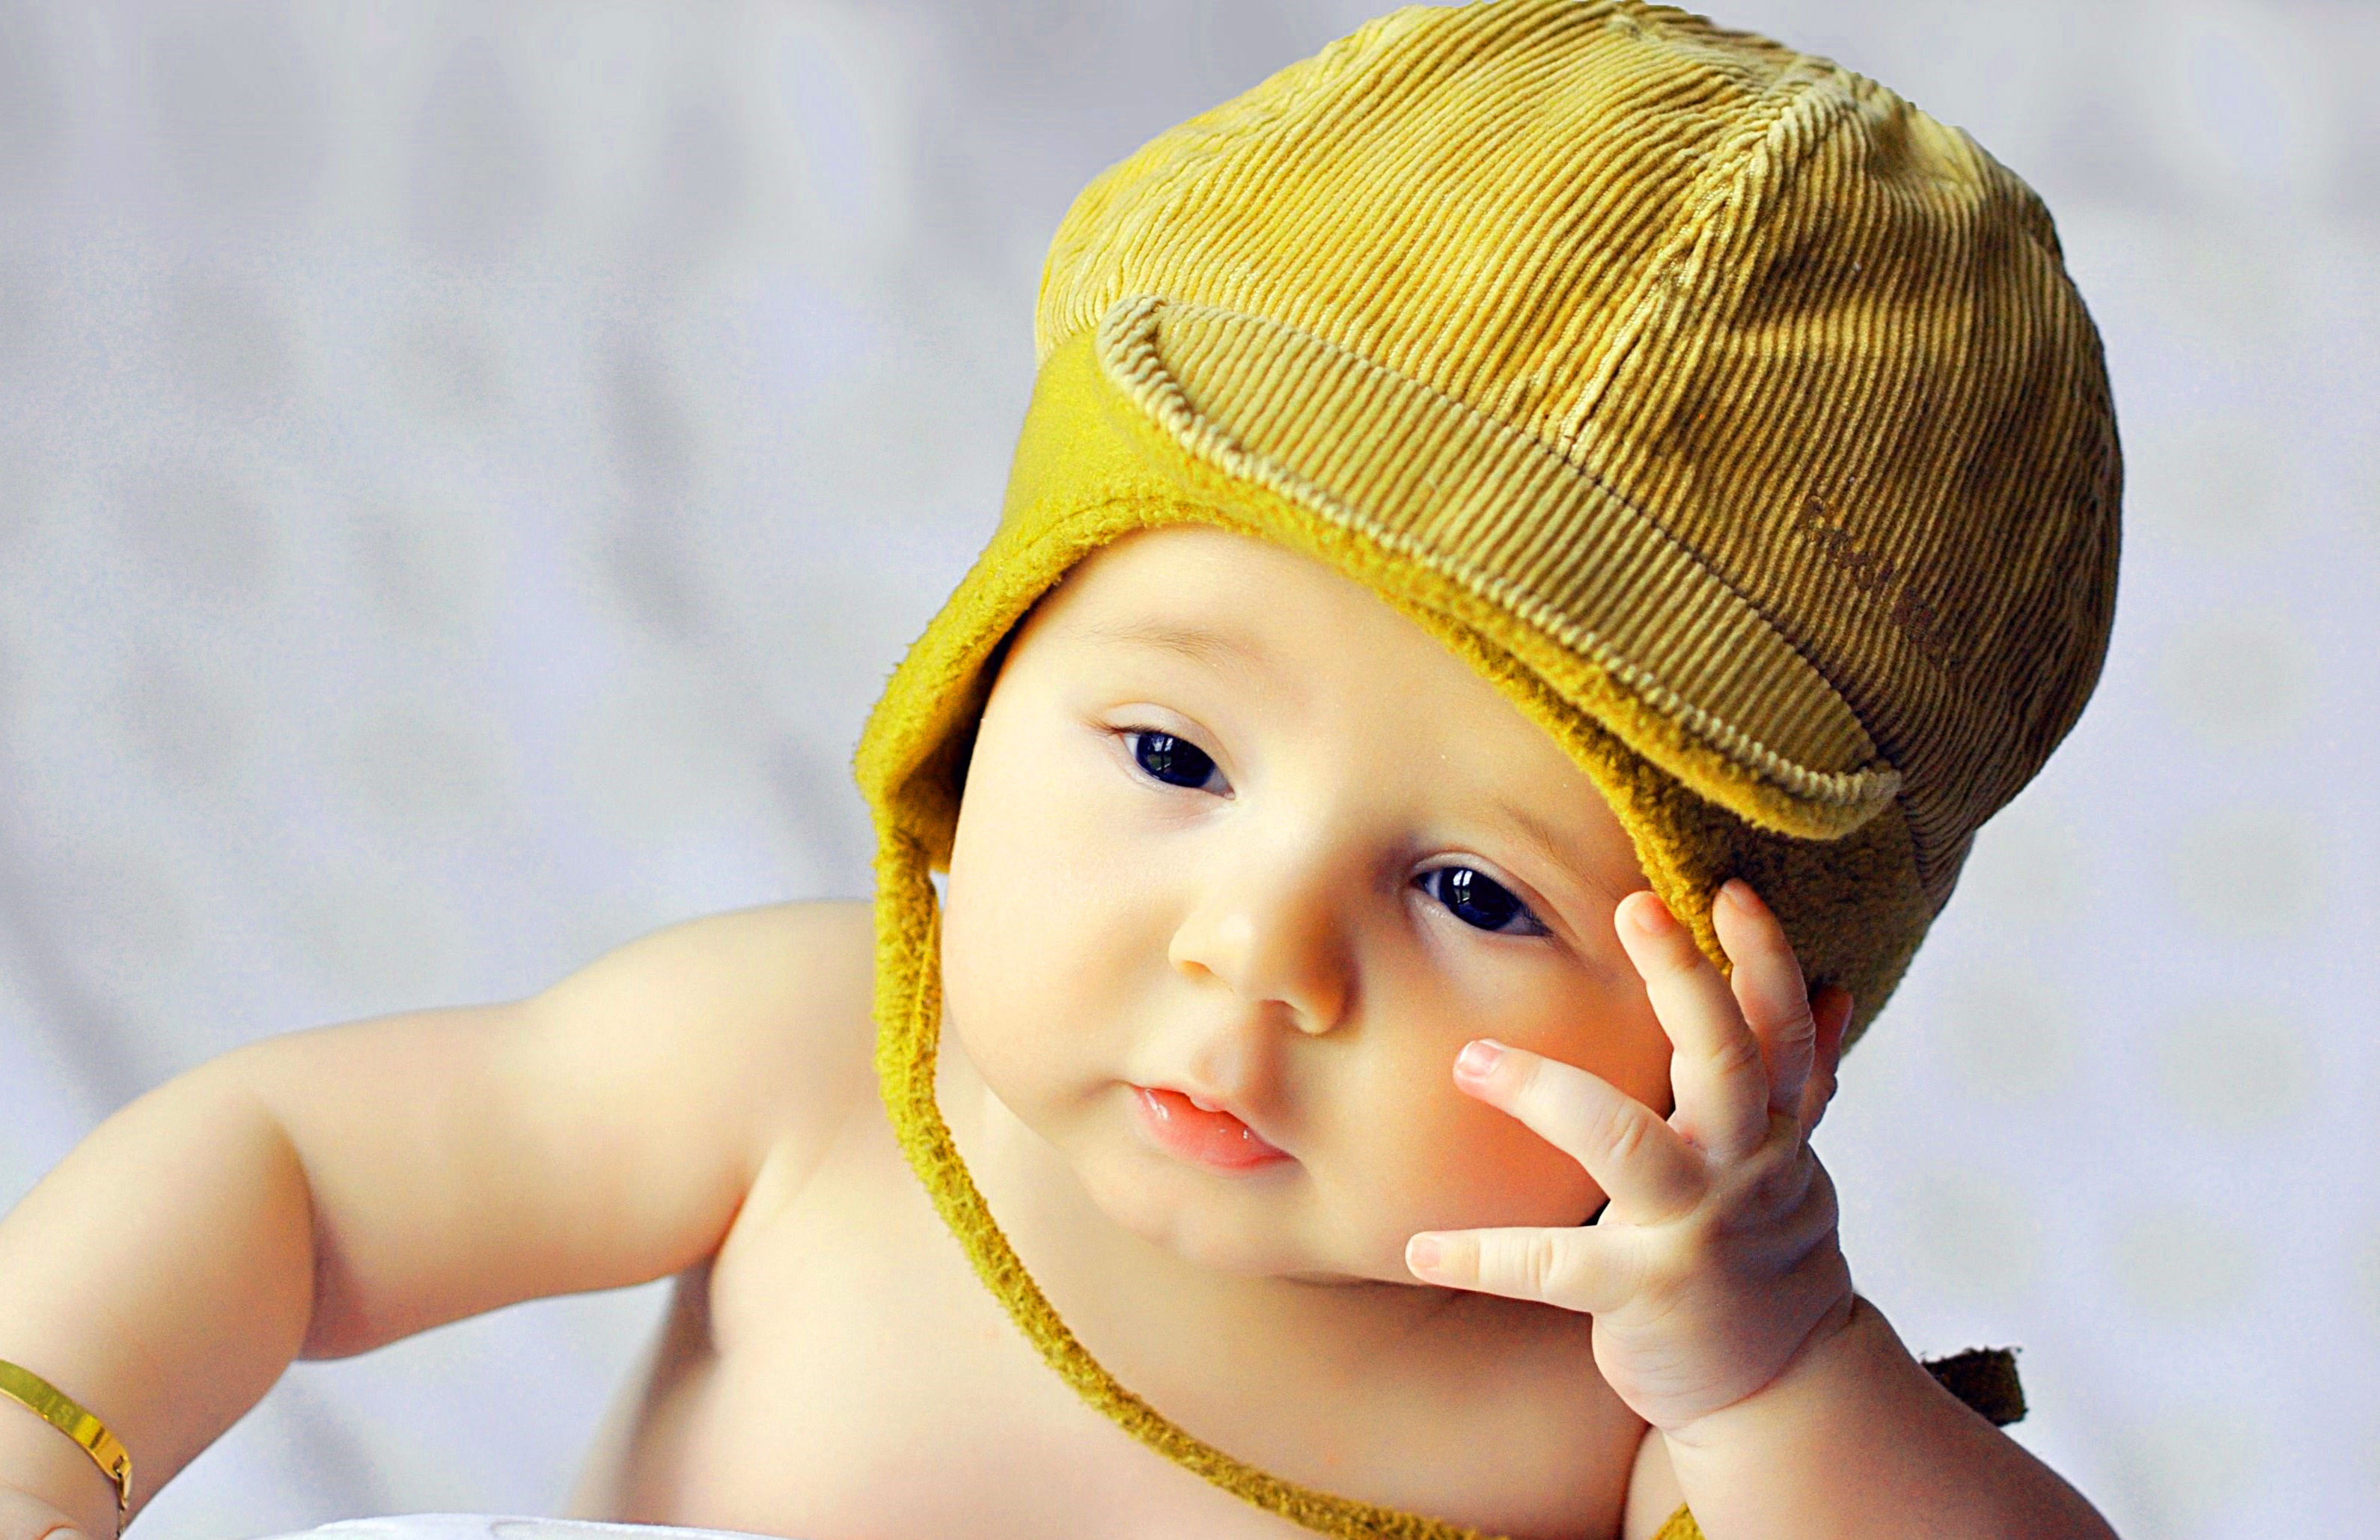 Cute Baby Boys & Girls Images Photo Pics HD Download